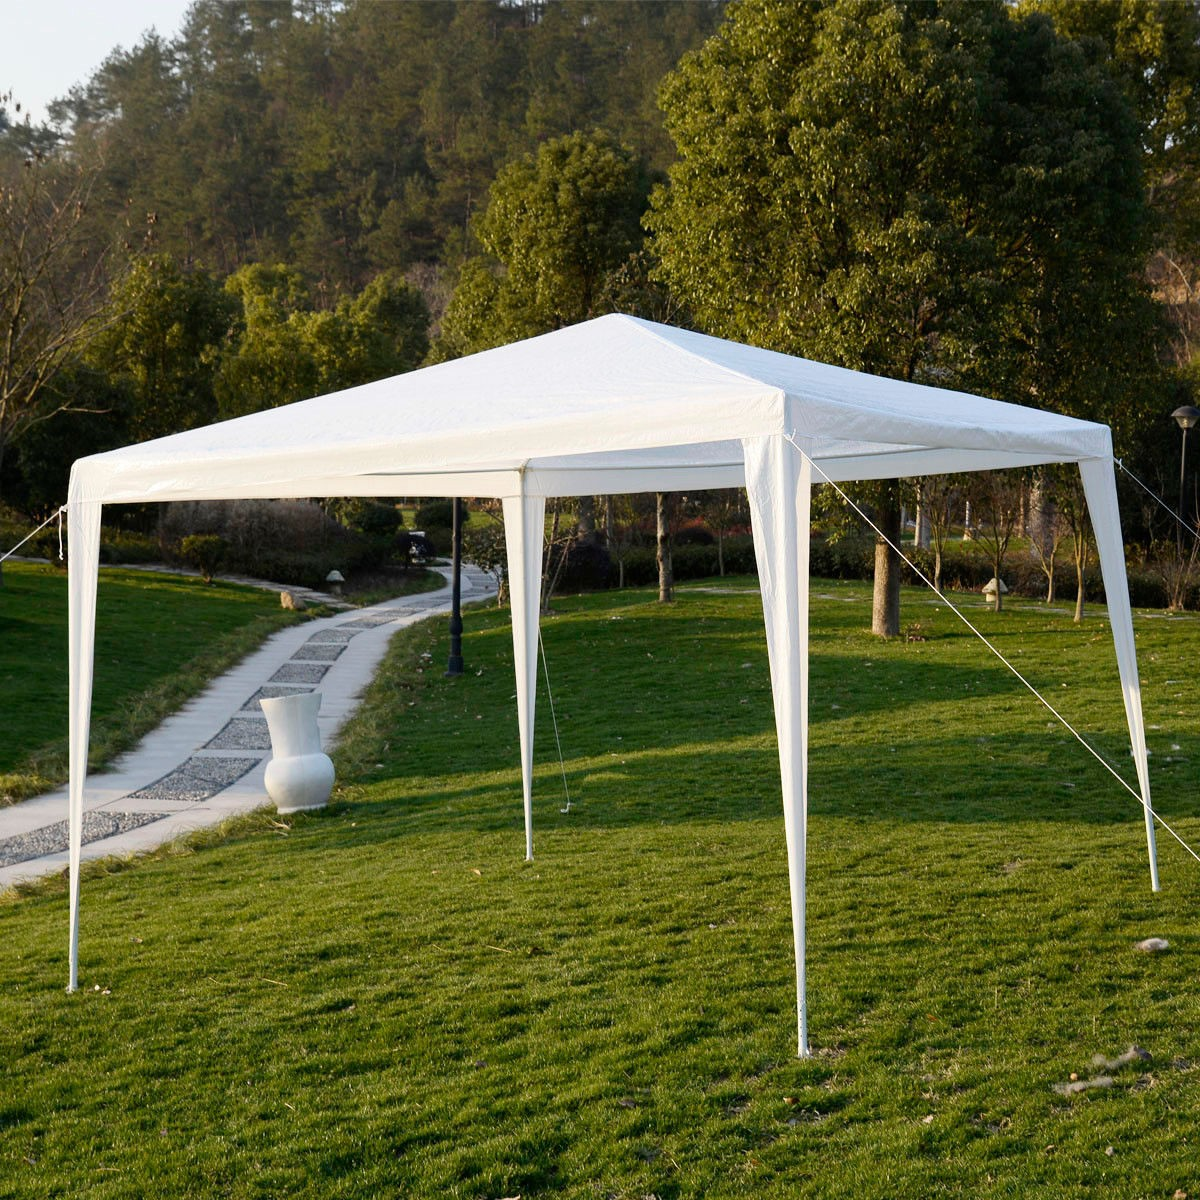 Apontus Outdoor Tent Canopy Gazebo 10 x 10 (White) : walmart tents and canopies - memphite.com